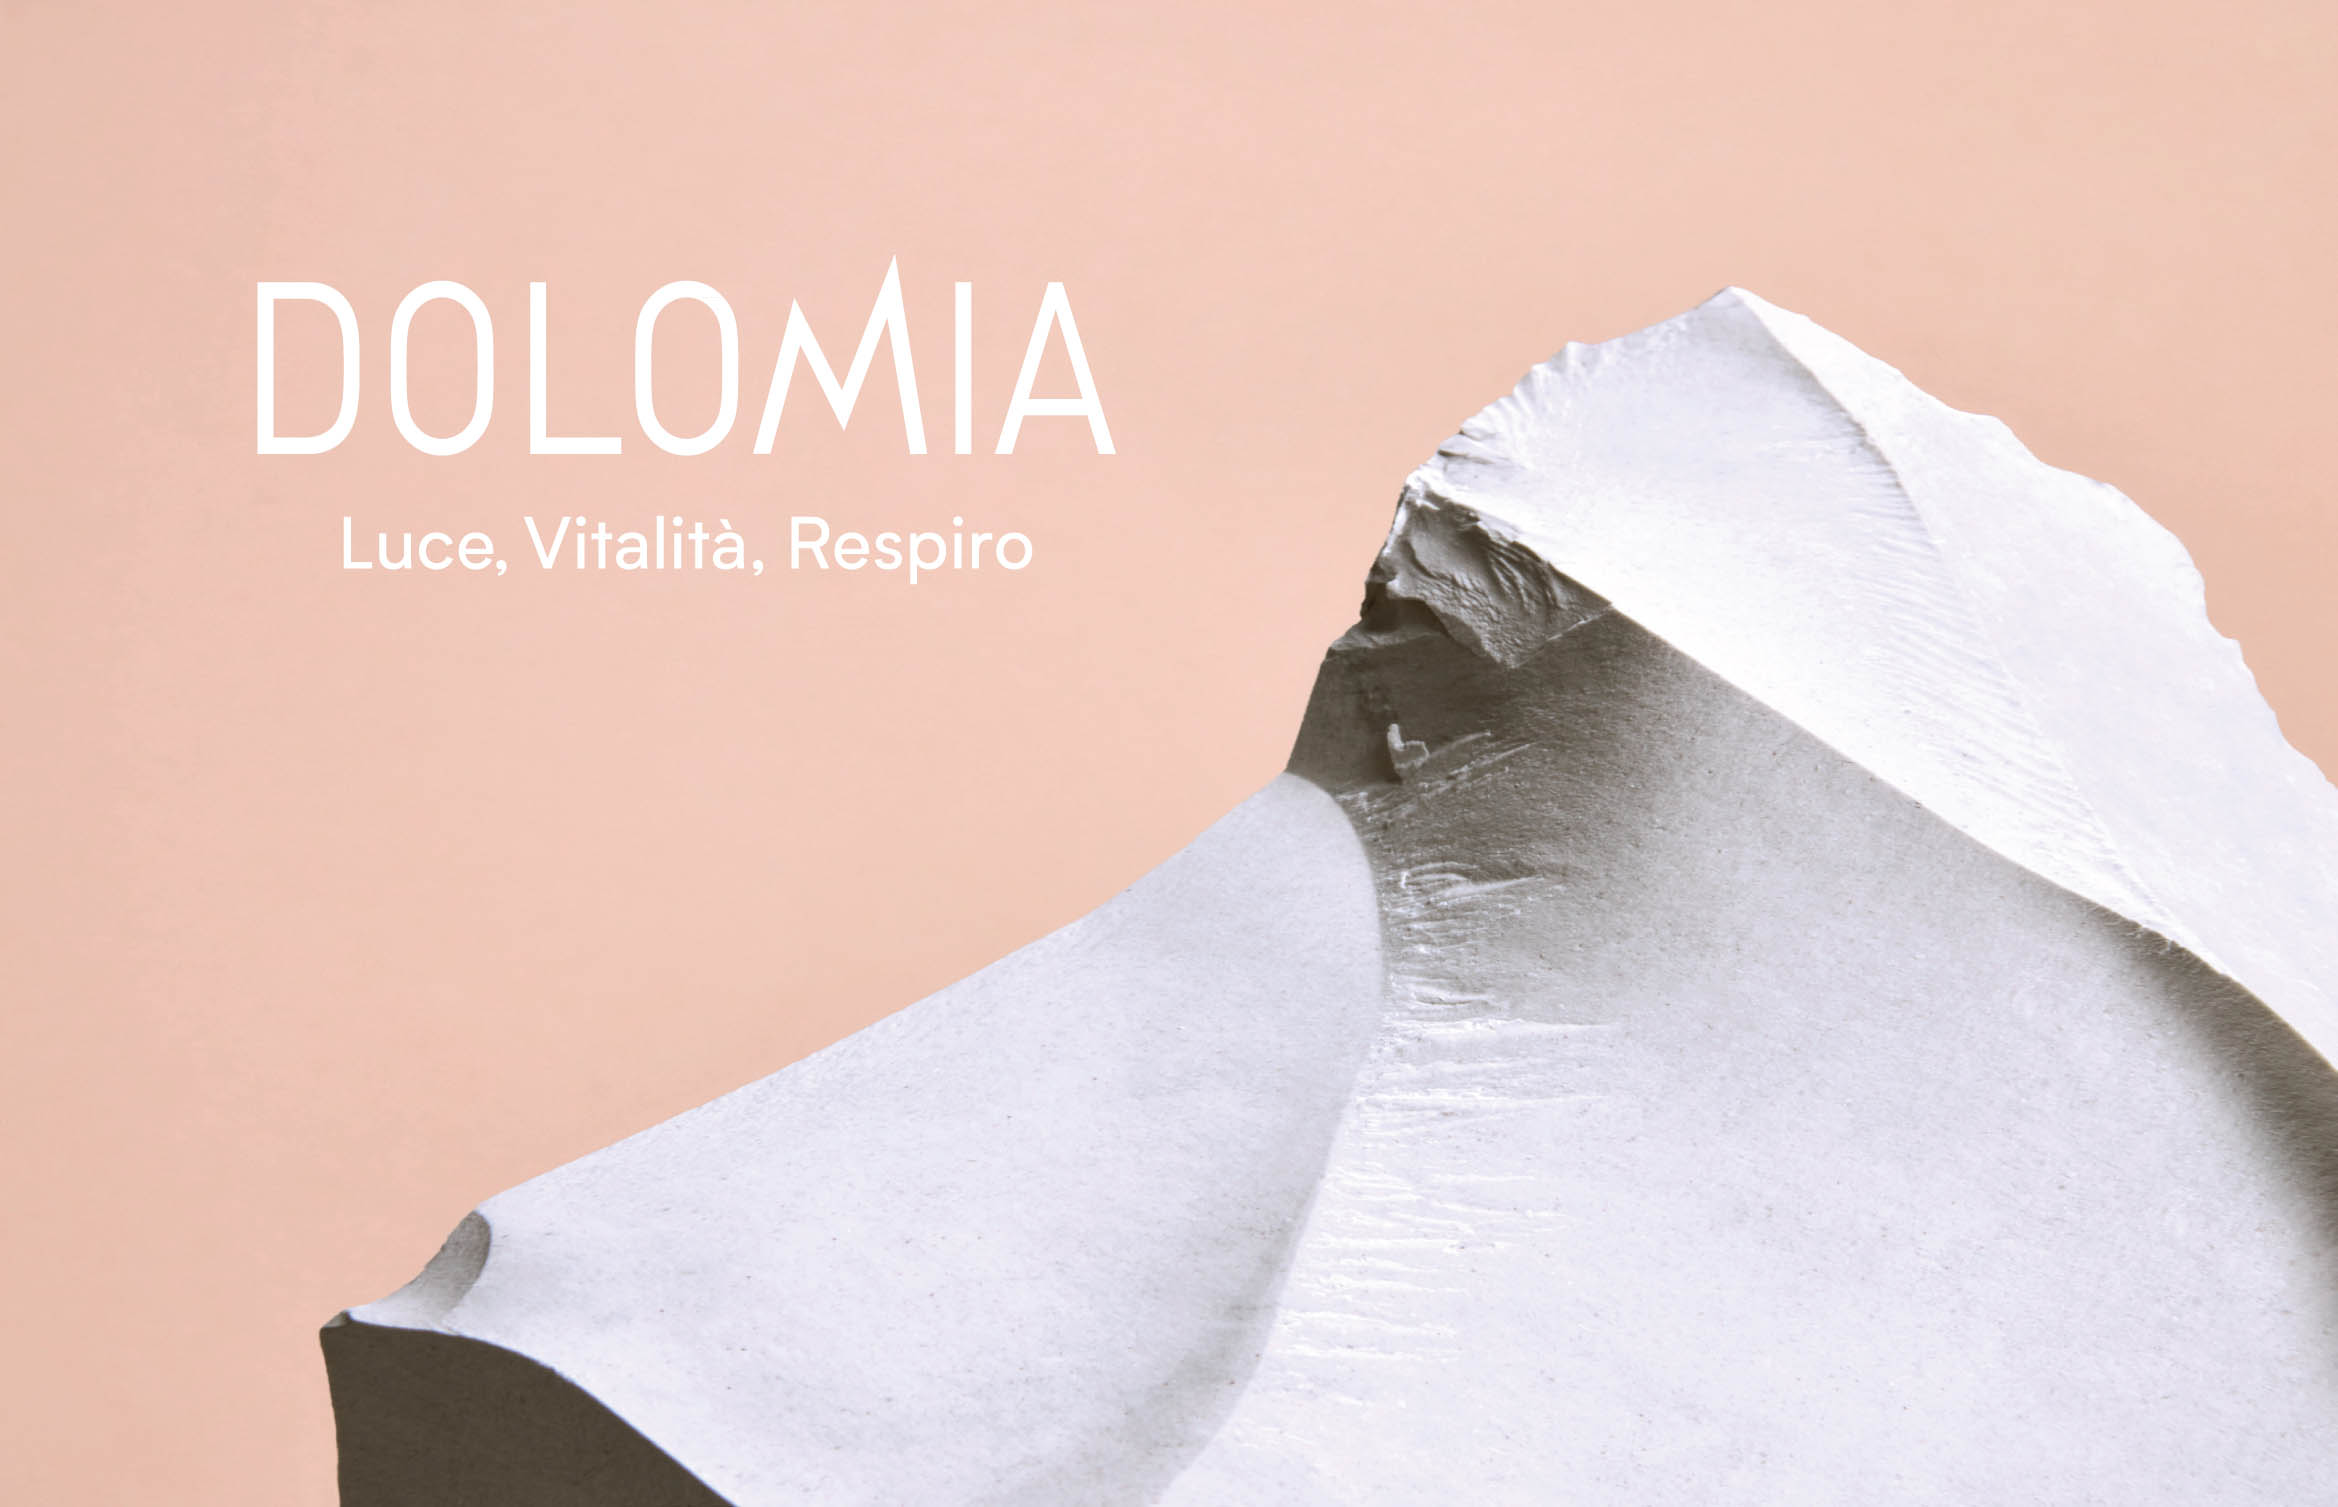 Dolomia Skincare new launch set styling project @ Fioraio Bianchi 01